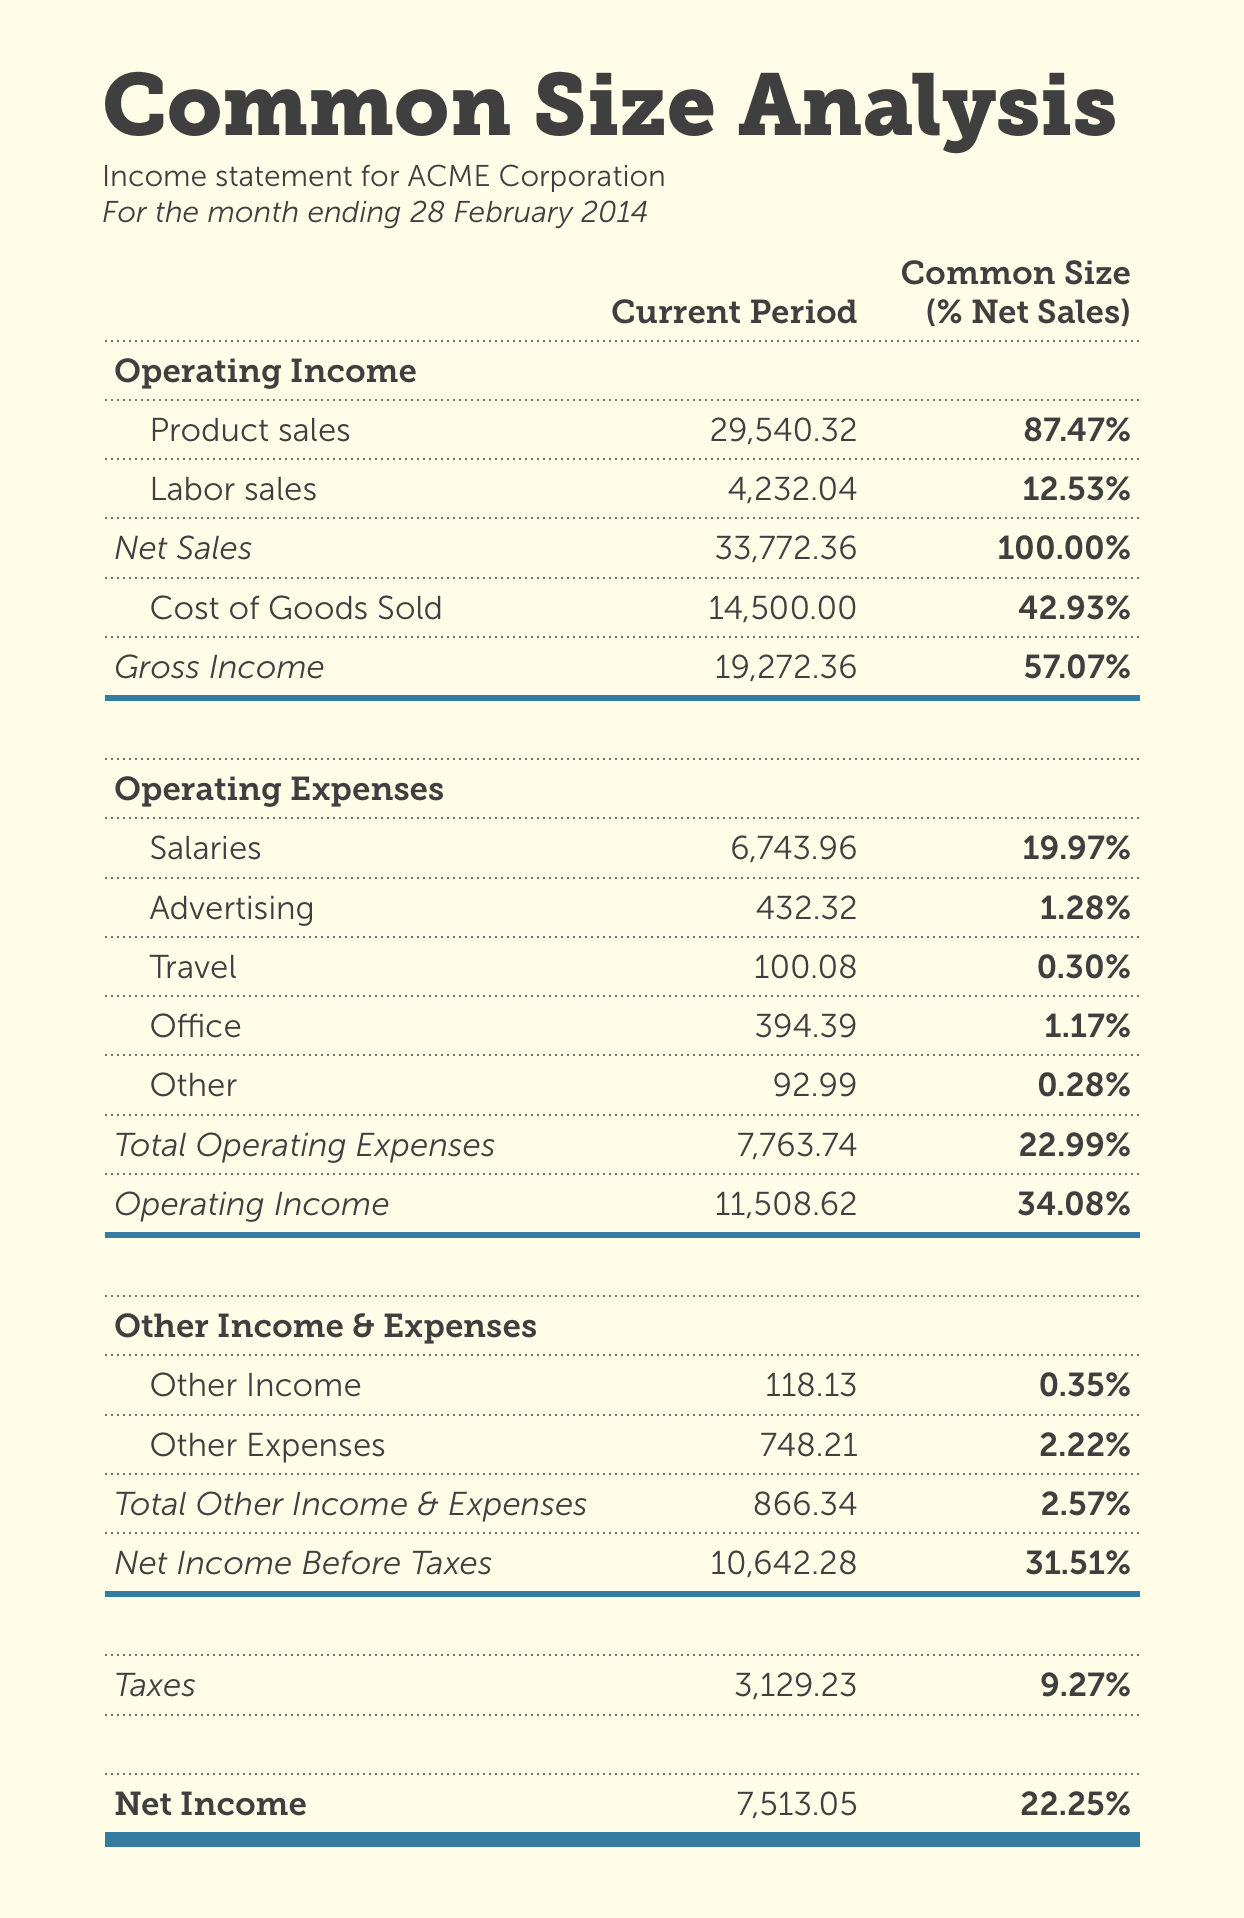 A sample income statement modified for common size analysis